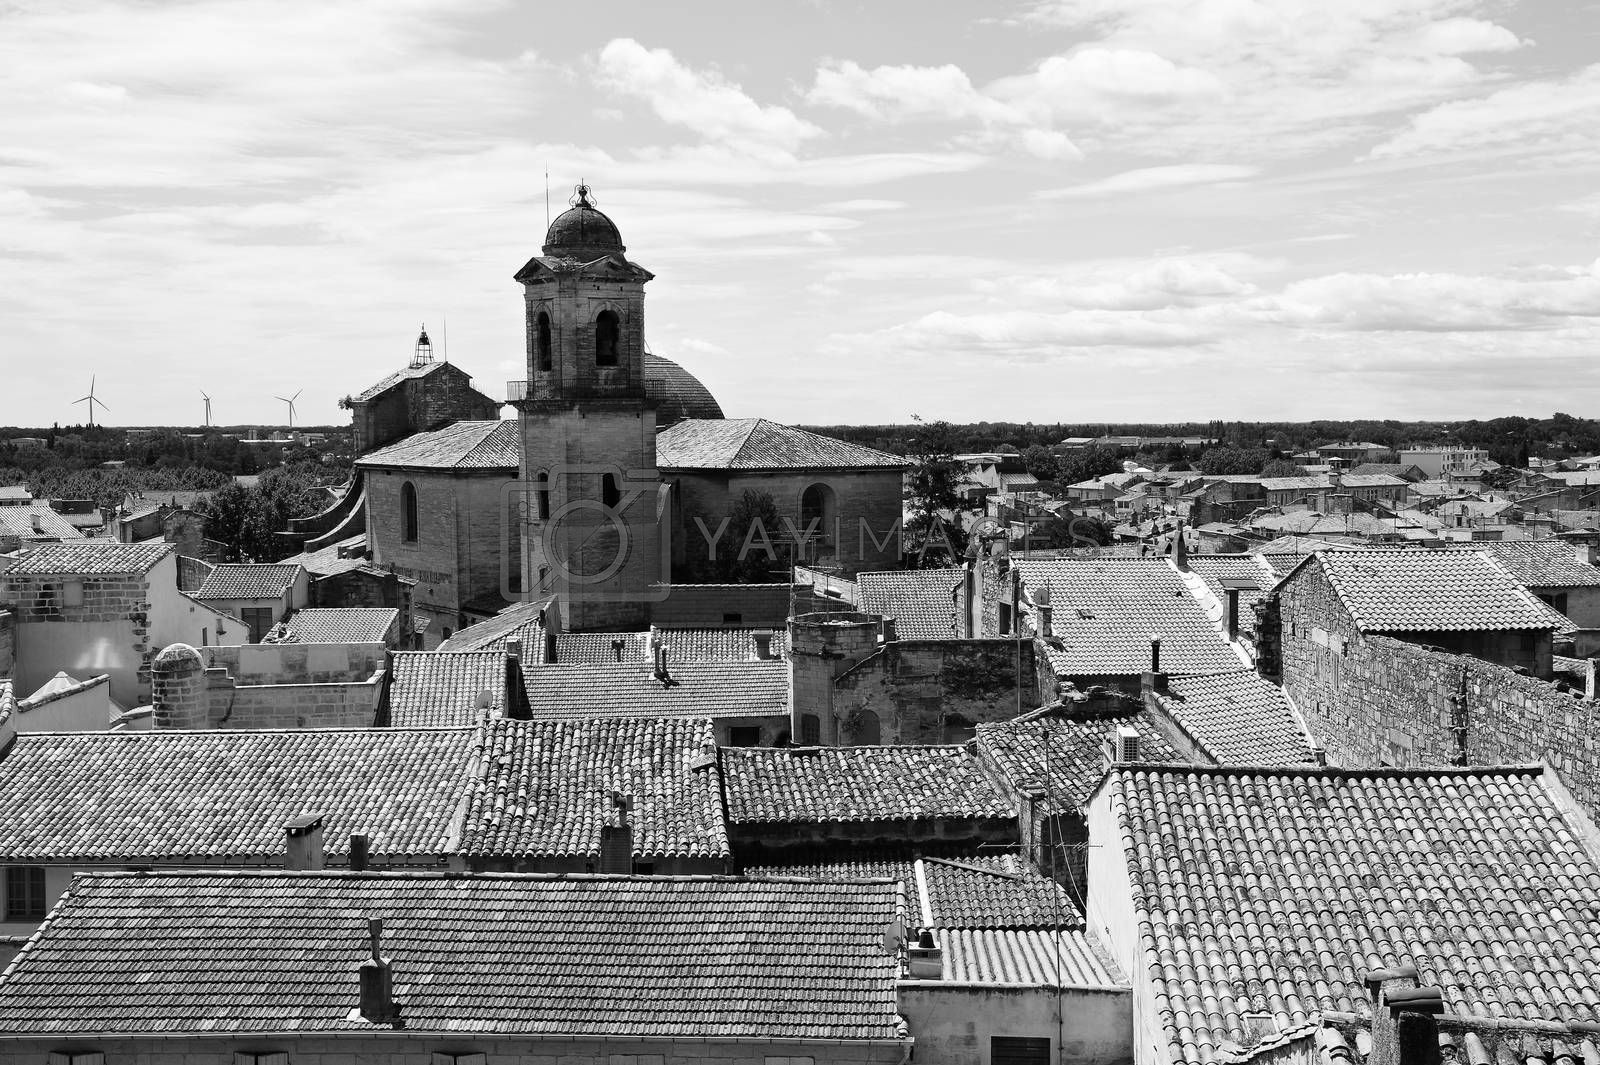 Deserted tiled roofs of France in black and white. An optimistic view over a sleepy city of Beaucaire